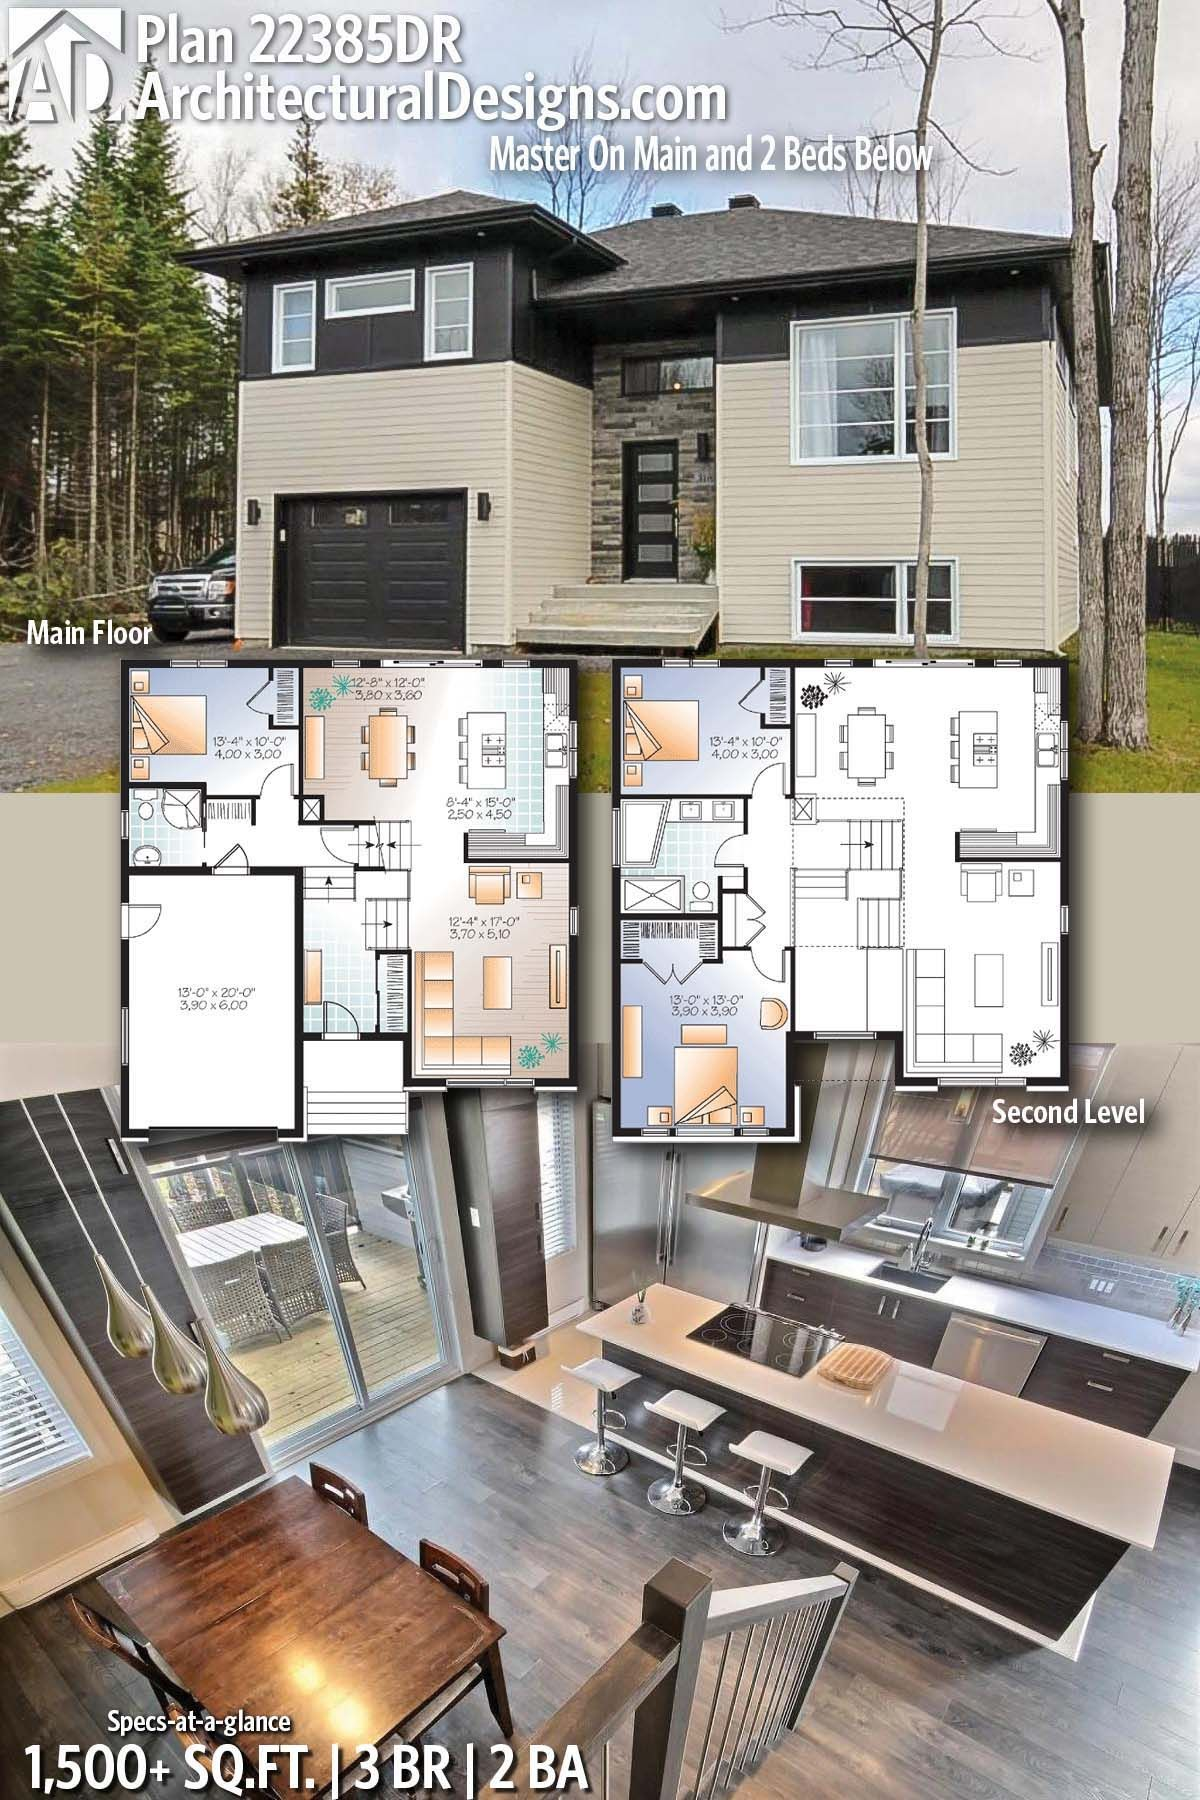 Architectural designs home plan dr with bedrooms and baths in sq ft ready when you are where do want to build also rh pinterest